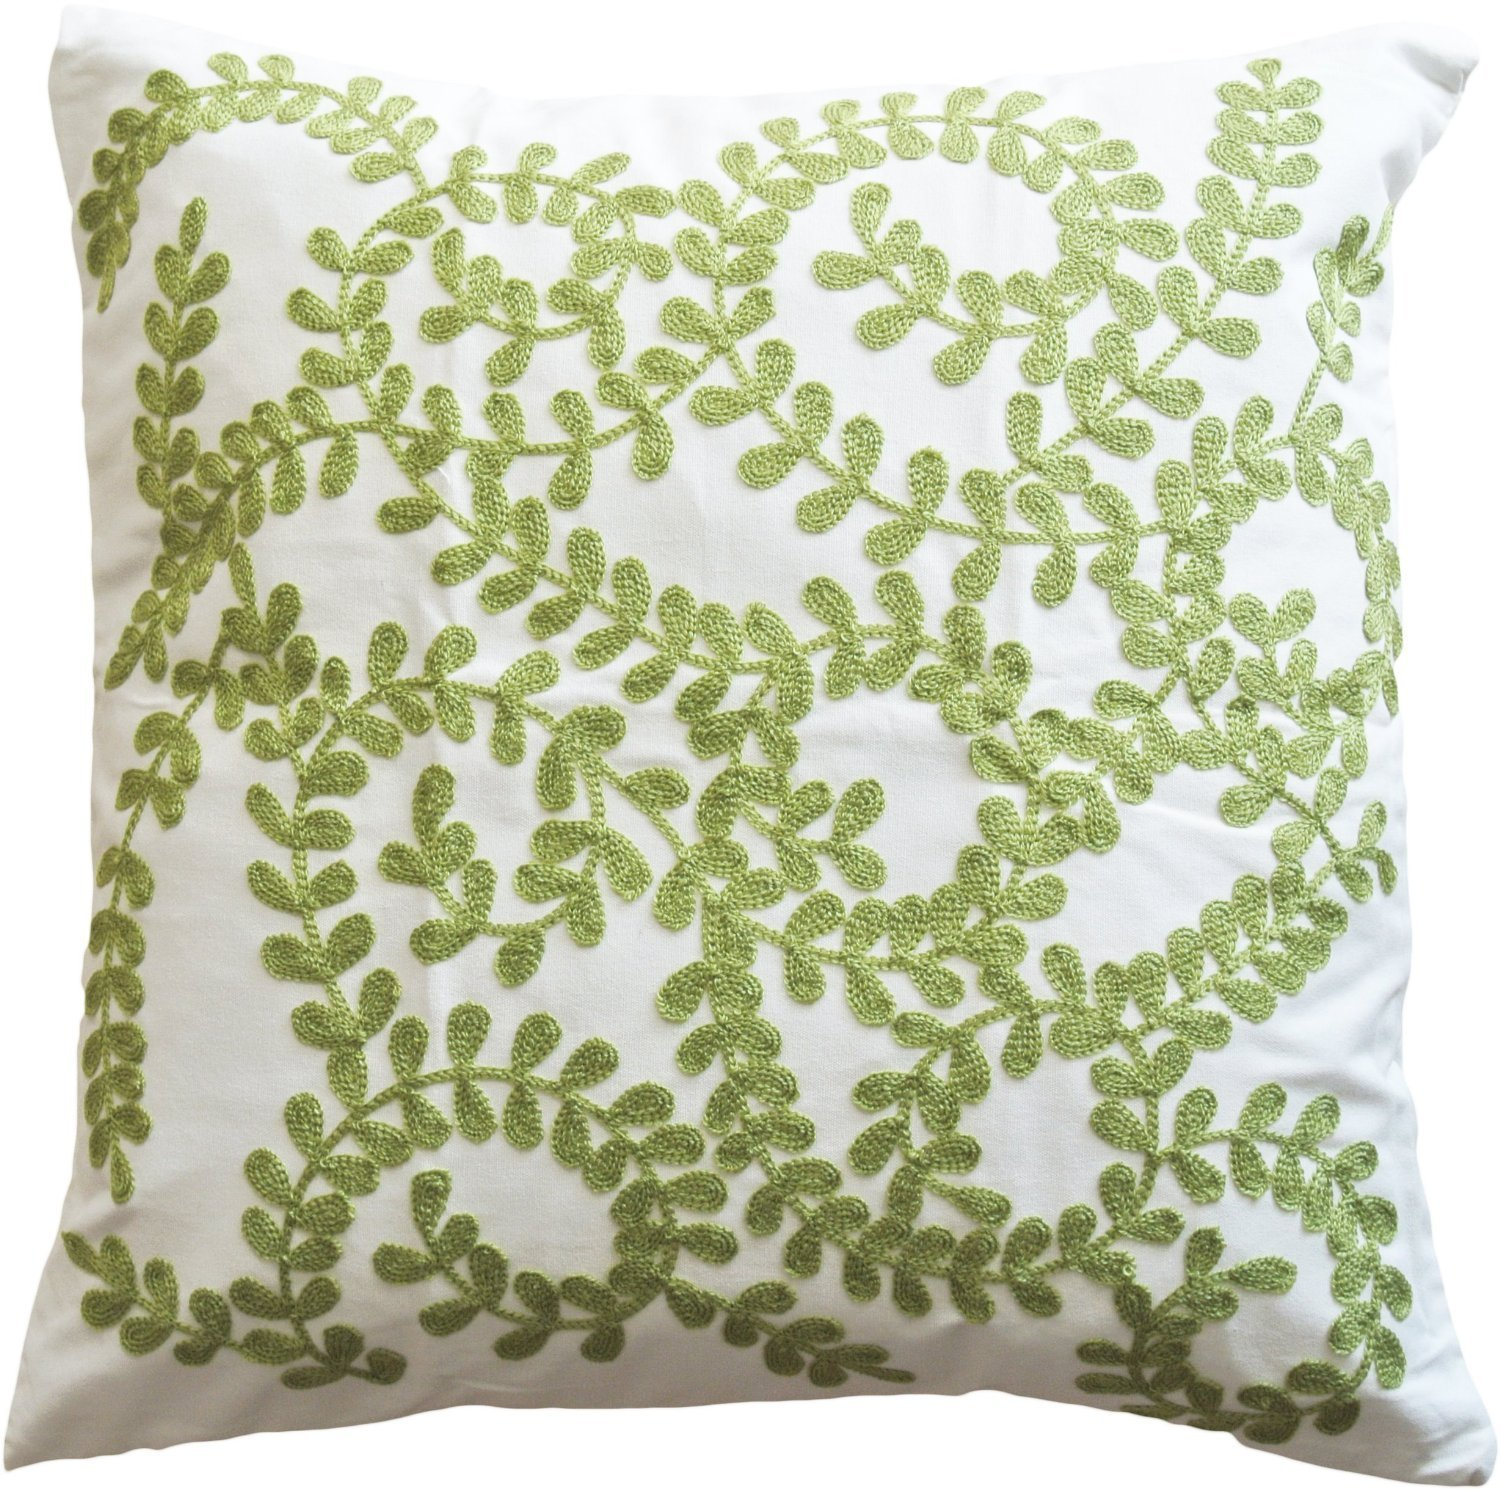 Green Vine Embroidery Decorative Throw Pillow COVER 18